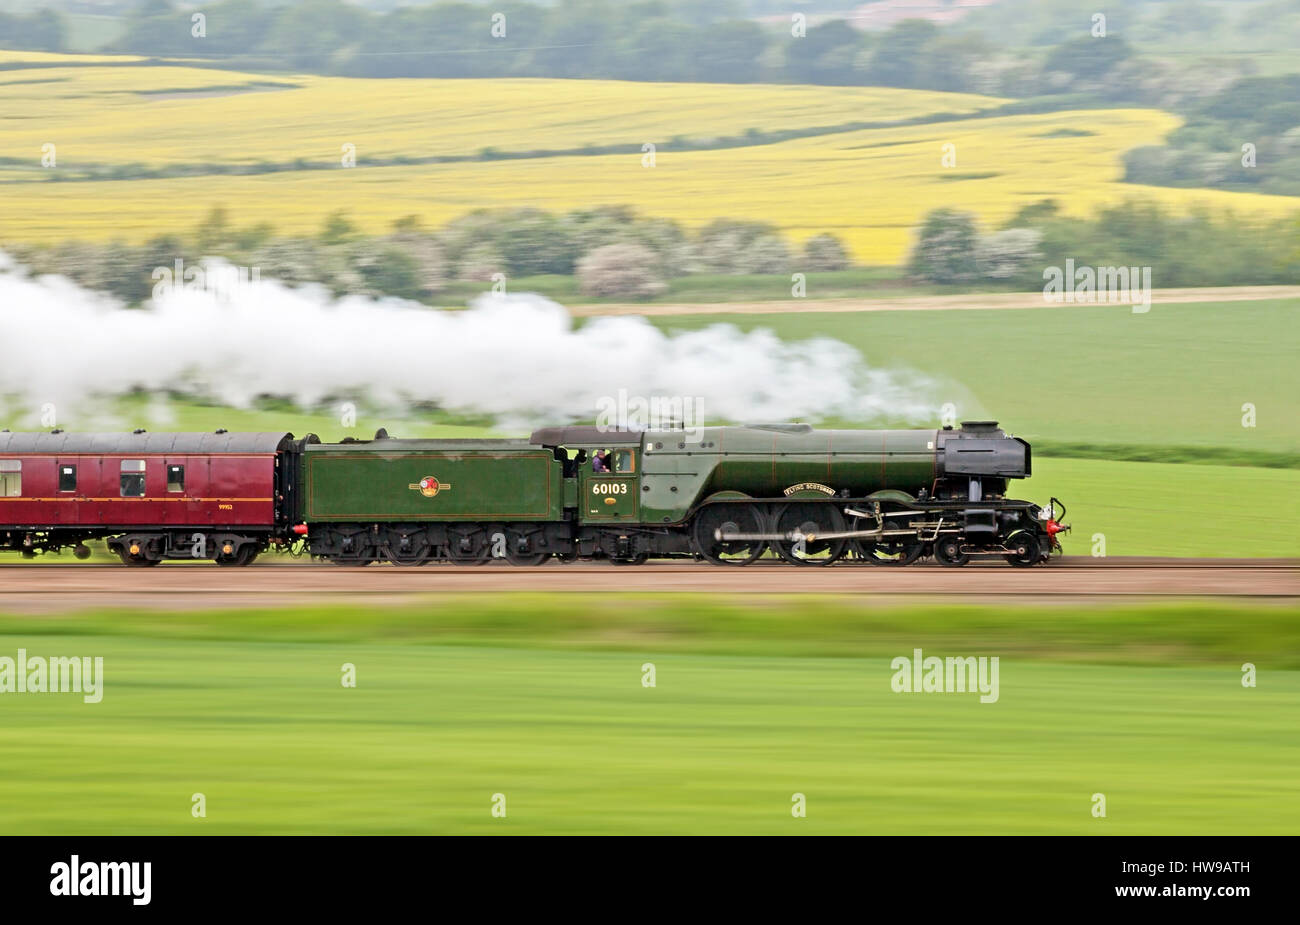 A3 Pacific No. 60103 'Flying Scotsman' races through the Derbyshire countryside near Staveley with a special - Stock Image